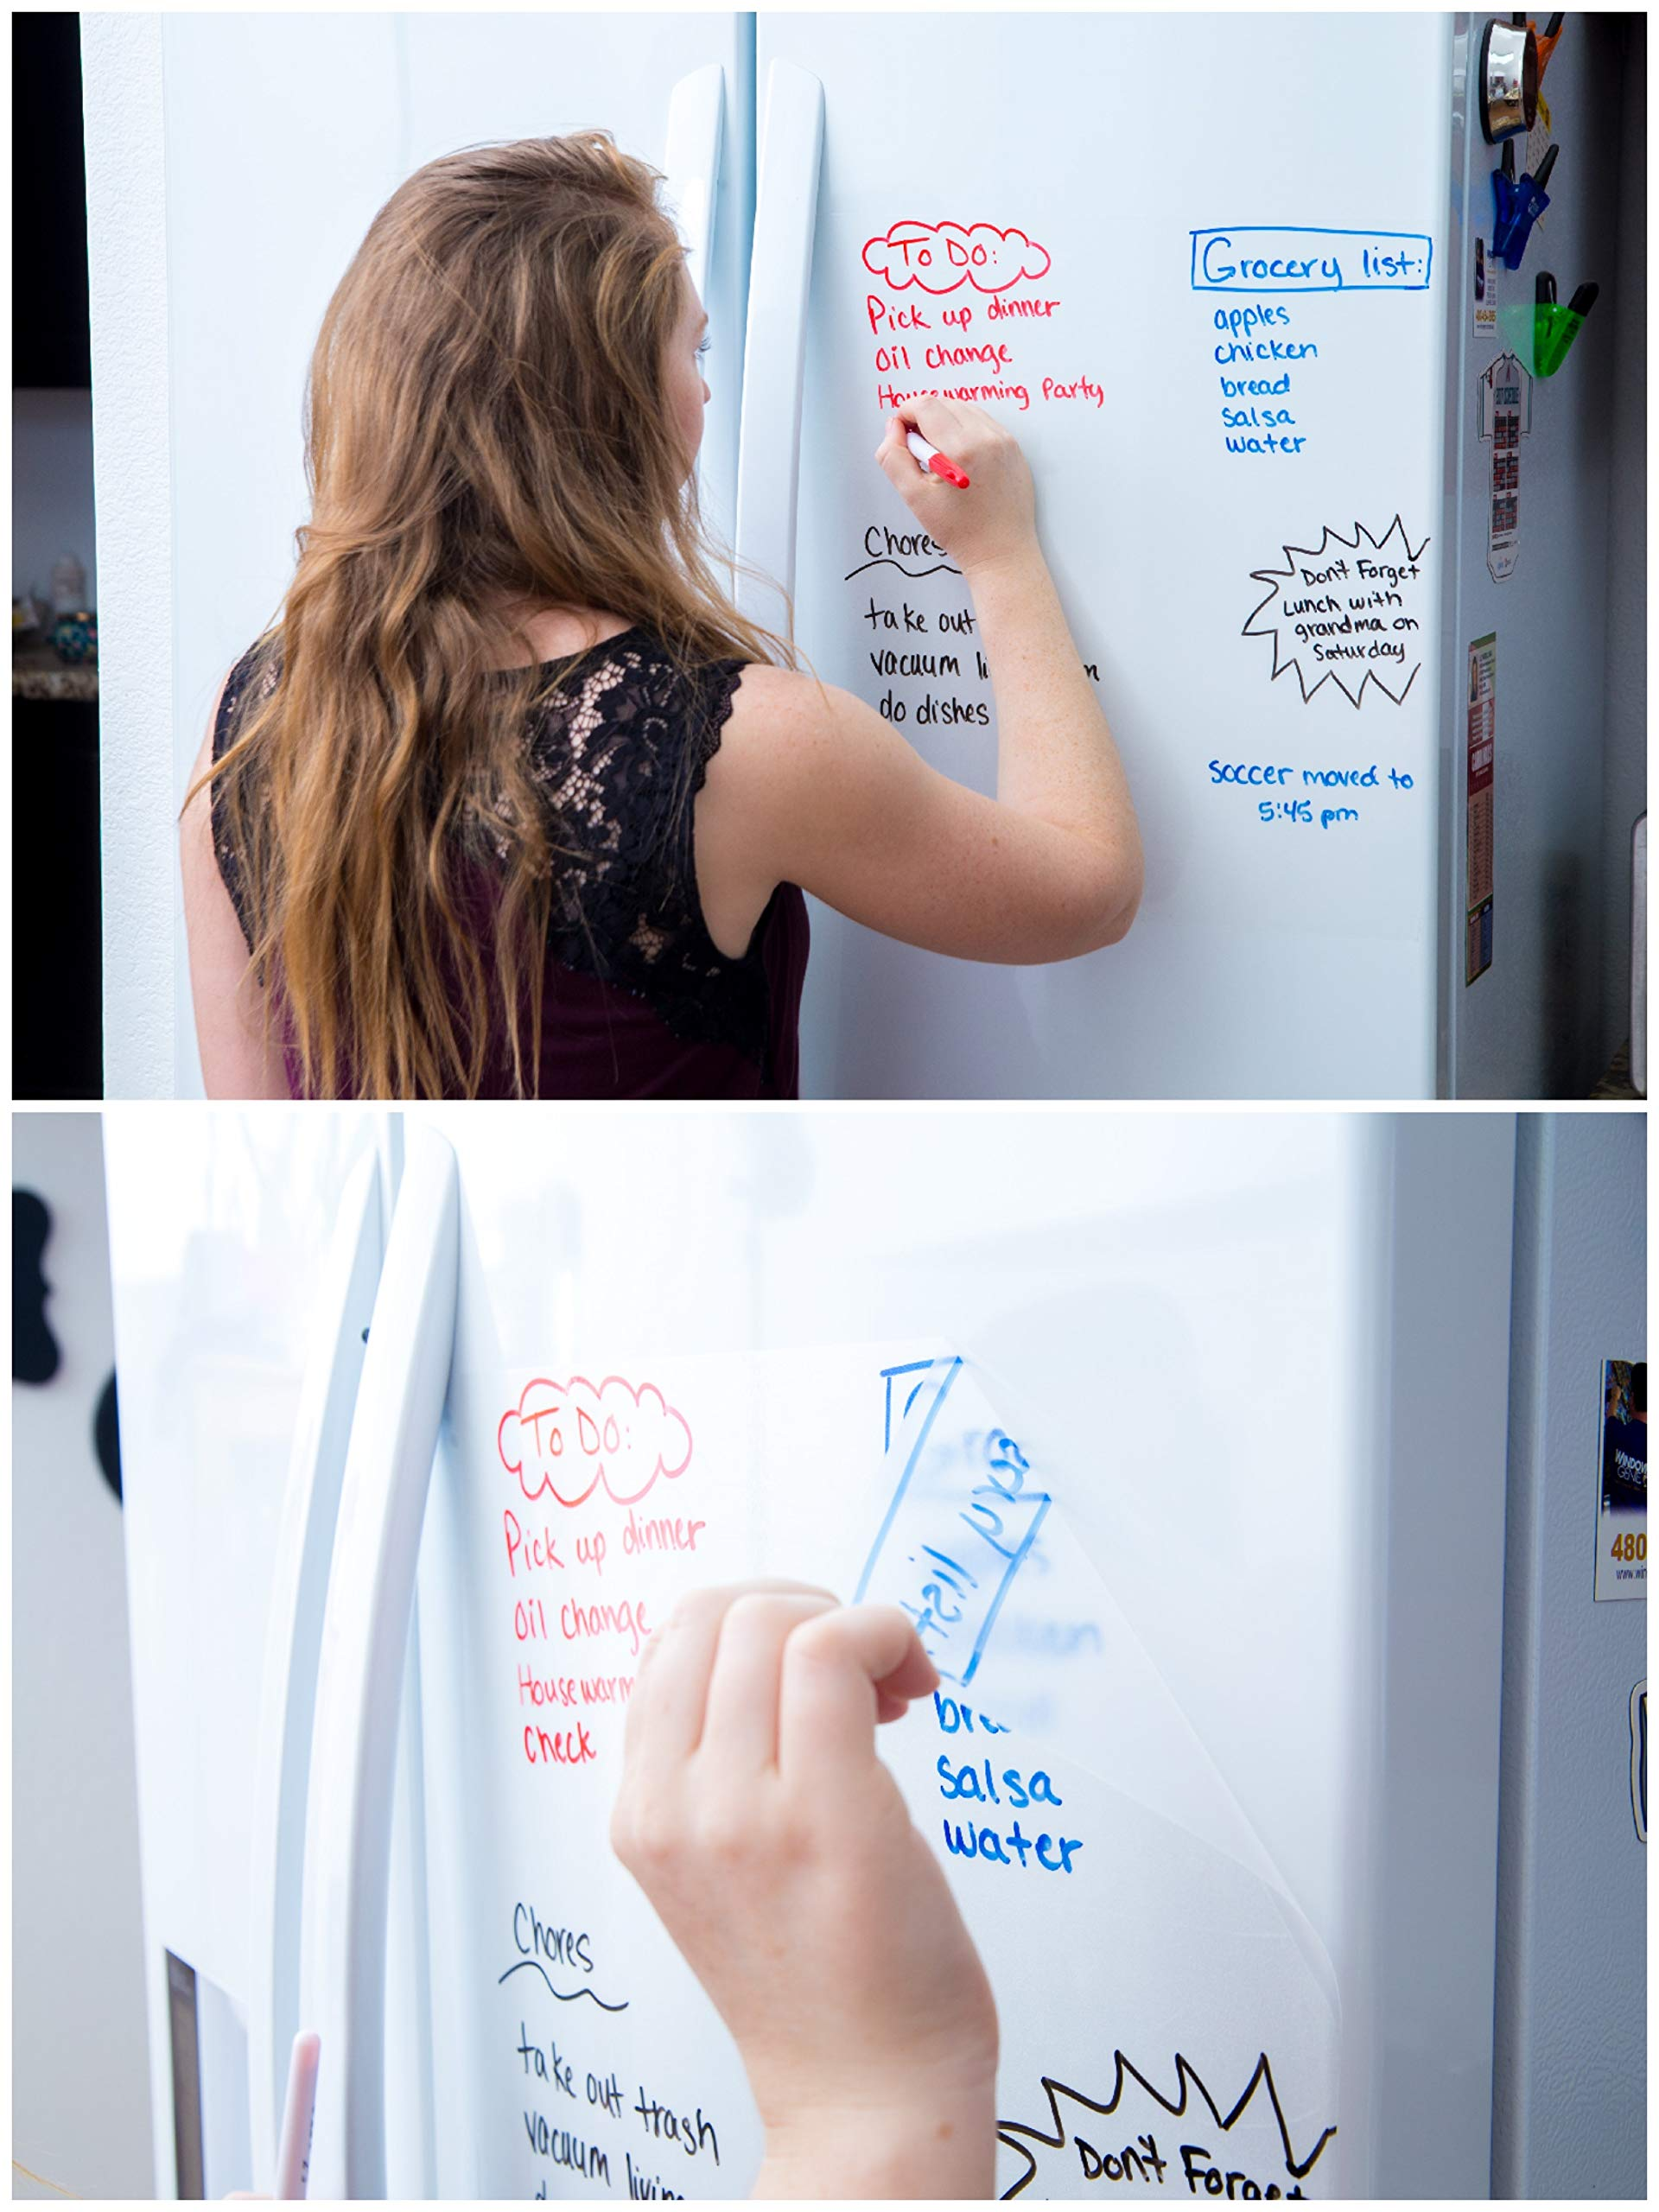 """Kassa Clear Dry Erase Board Sticker - 18'' x 78"""" (6.5 Feet) - 3 Dry-Erase Board Markers Included - Transparent White Board Film for Refrigerator, Desk, Office - Glass Whiteboard for Wall Alternative by Kassa (Image #2)"""